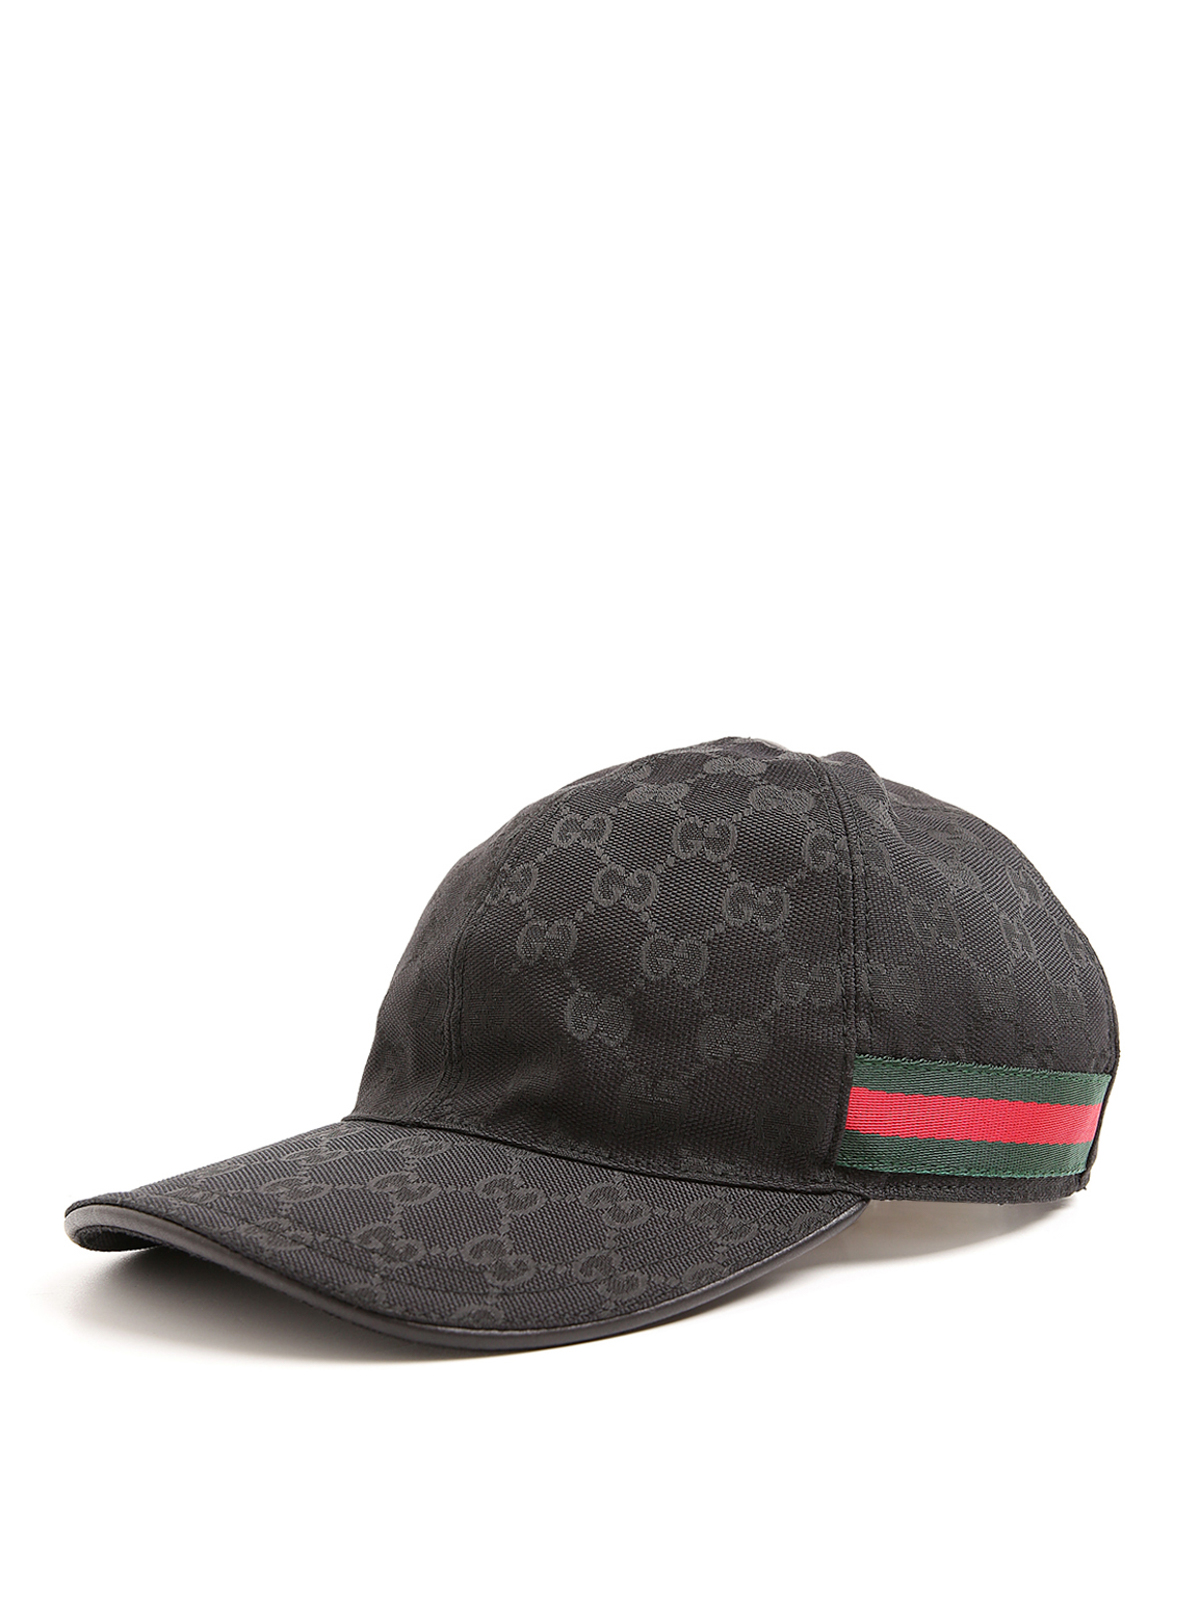 original gg canvas baseball hat by gucci hats caps ikrix. Black Bedroom Furniture Sets. Home Design Ideas